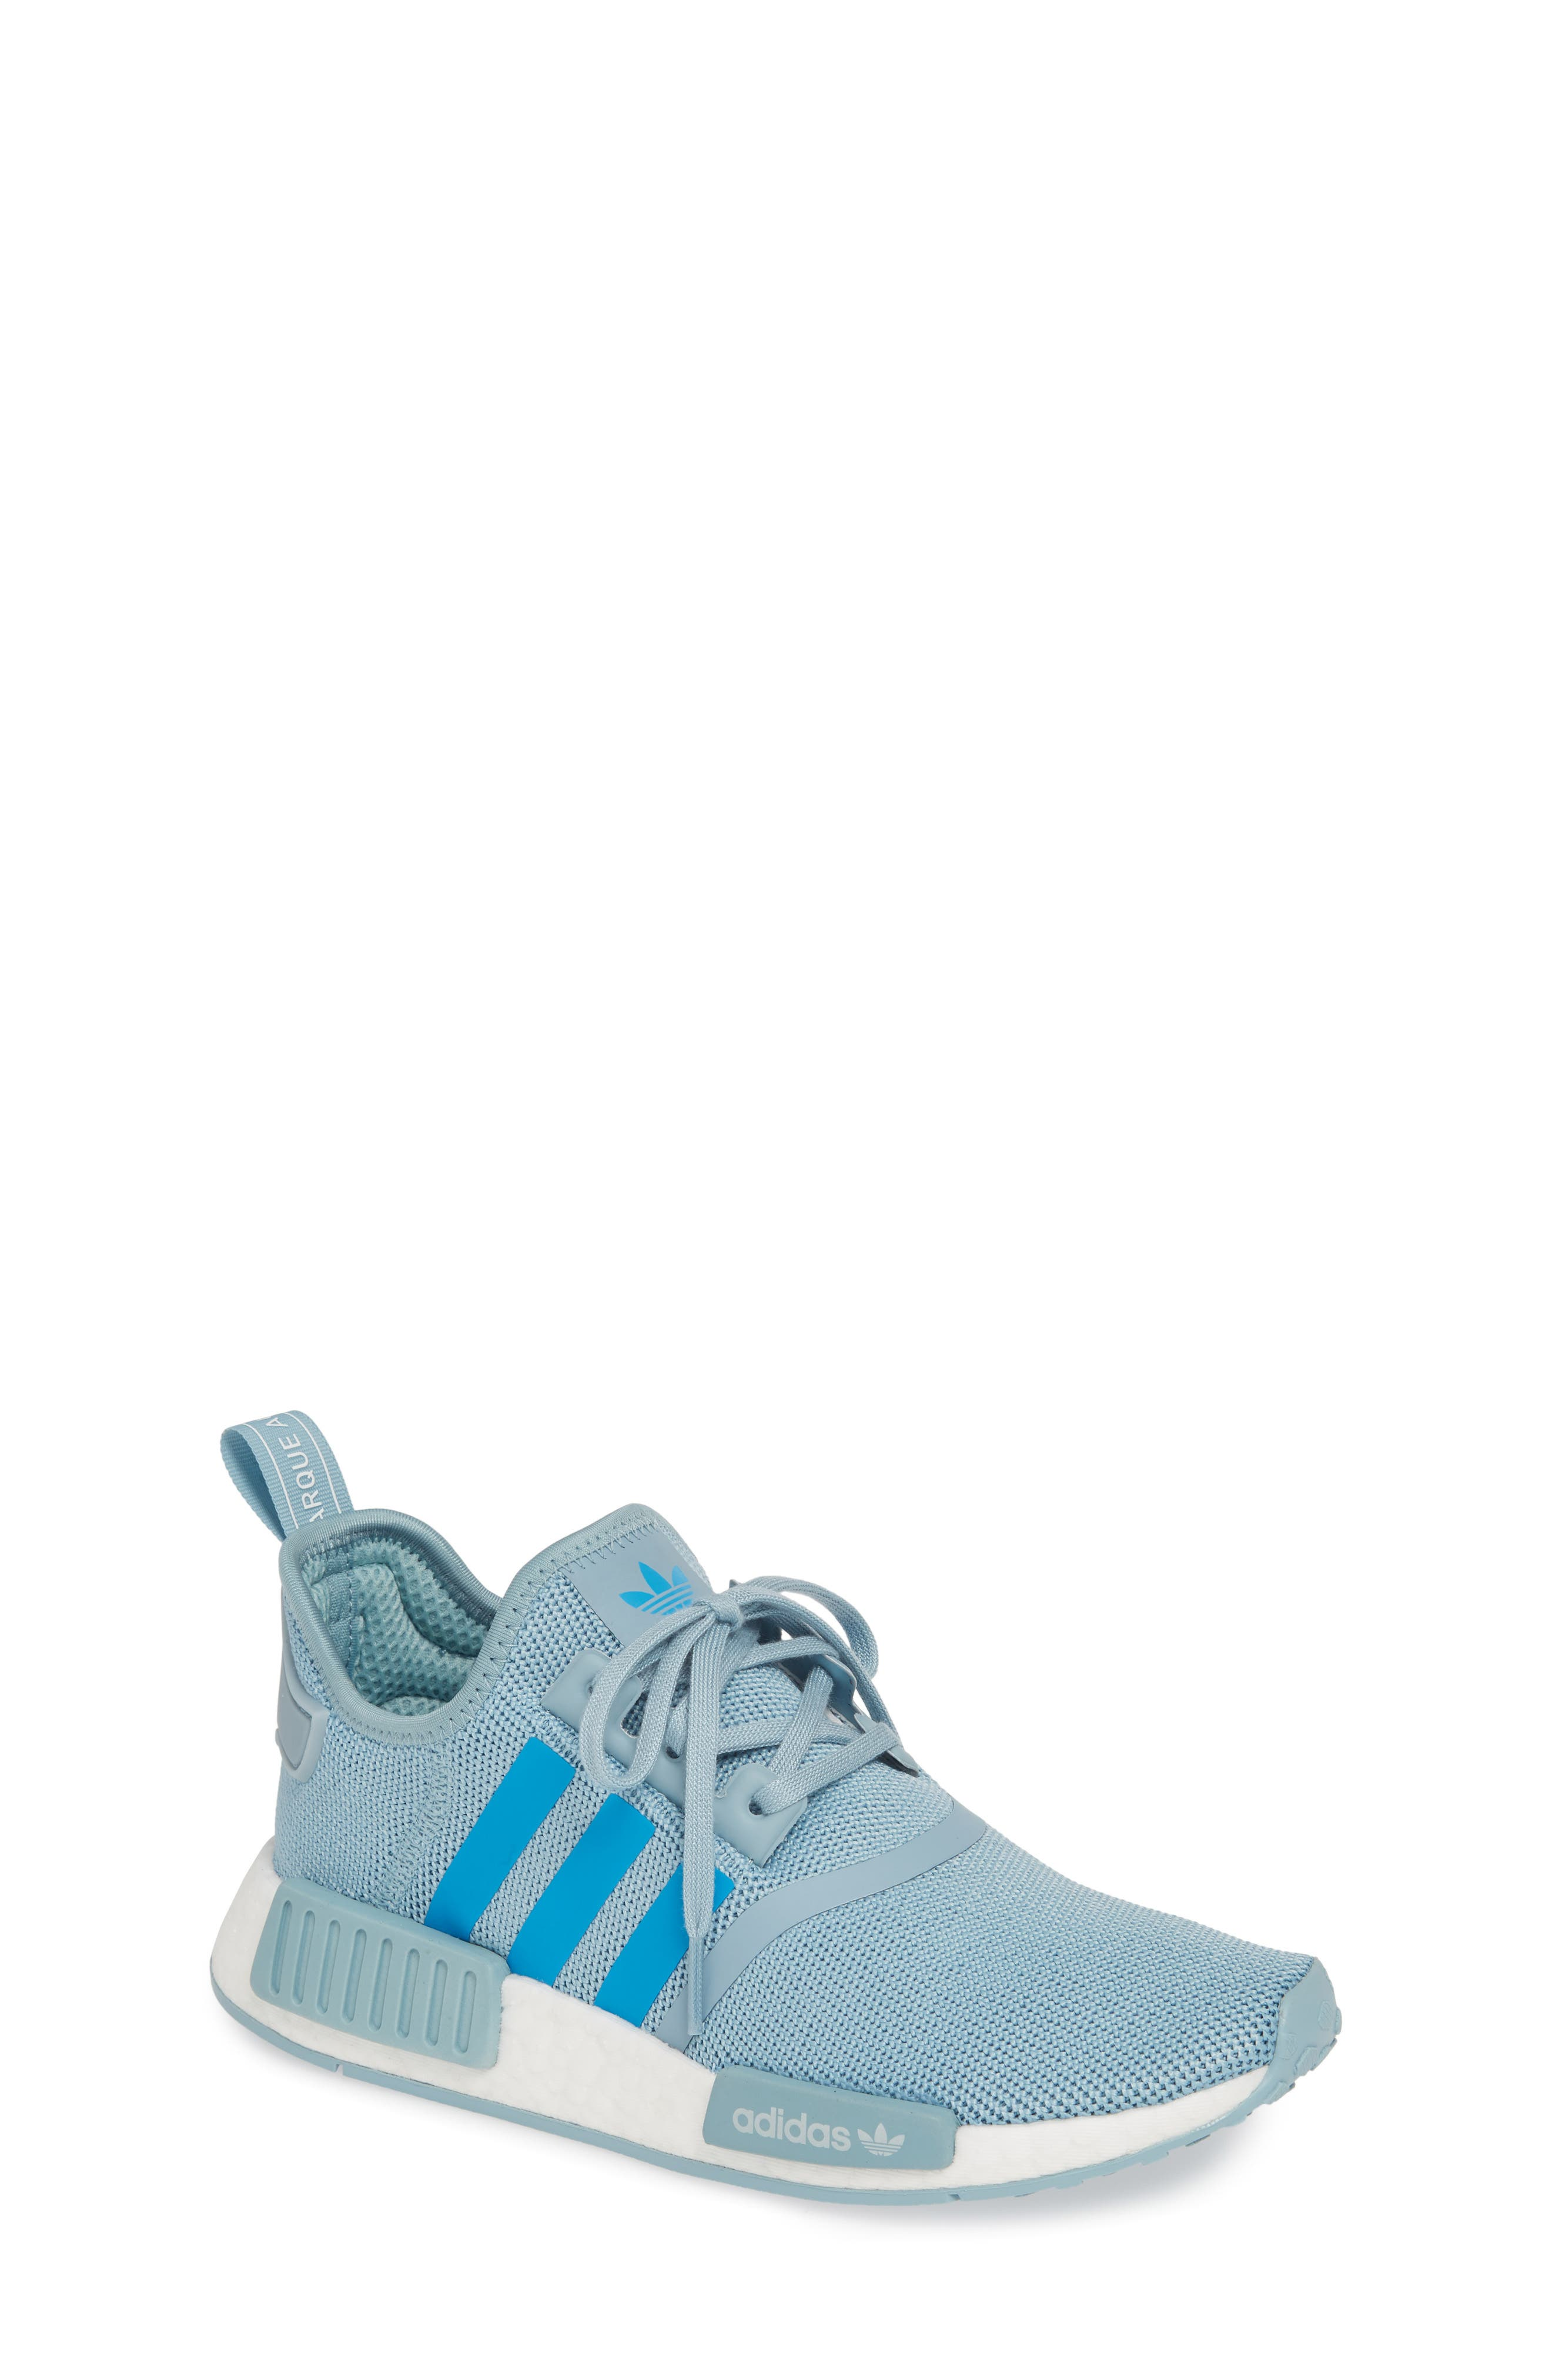 c7baa3b594a43 adidas for Kids  Activewear   Shoes